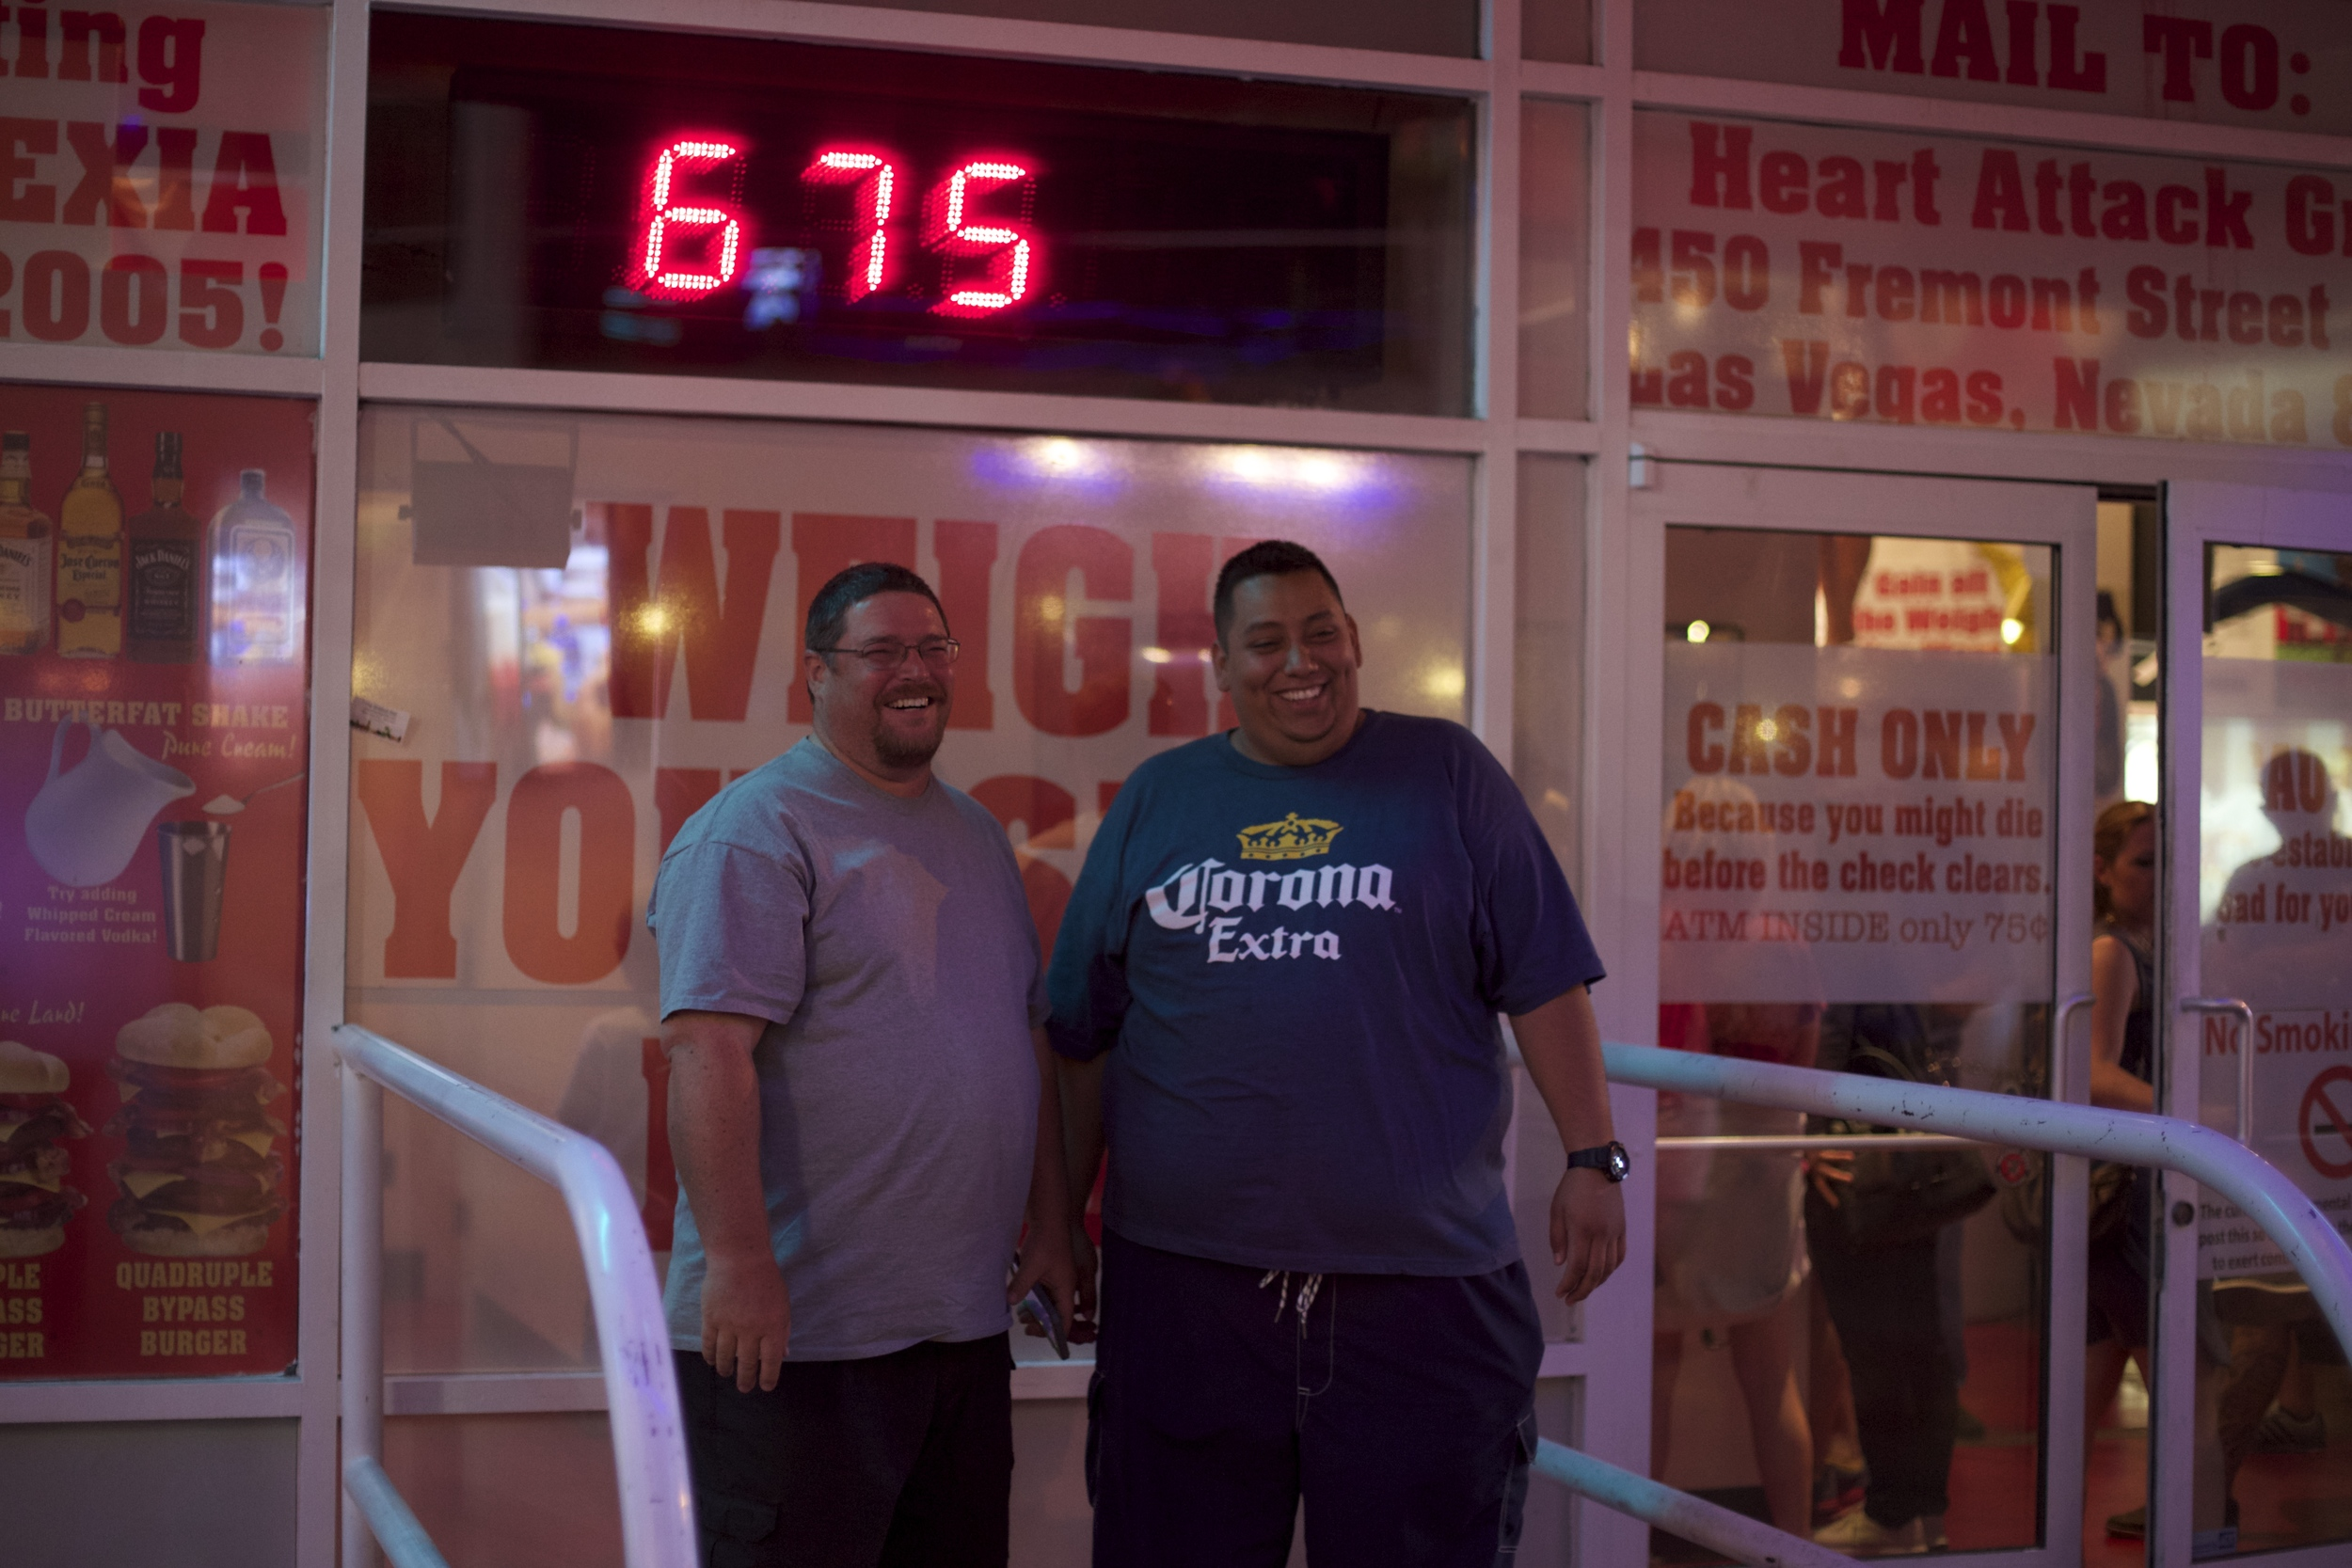 some big dudes weighing in outside of Heart Attack Grill. If you weigh over 350 pounds, you get free food.